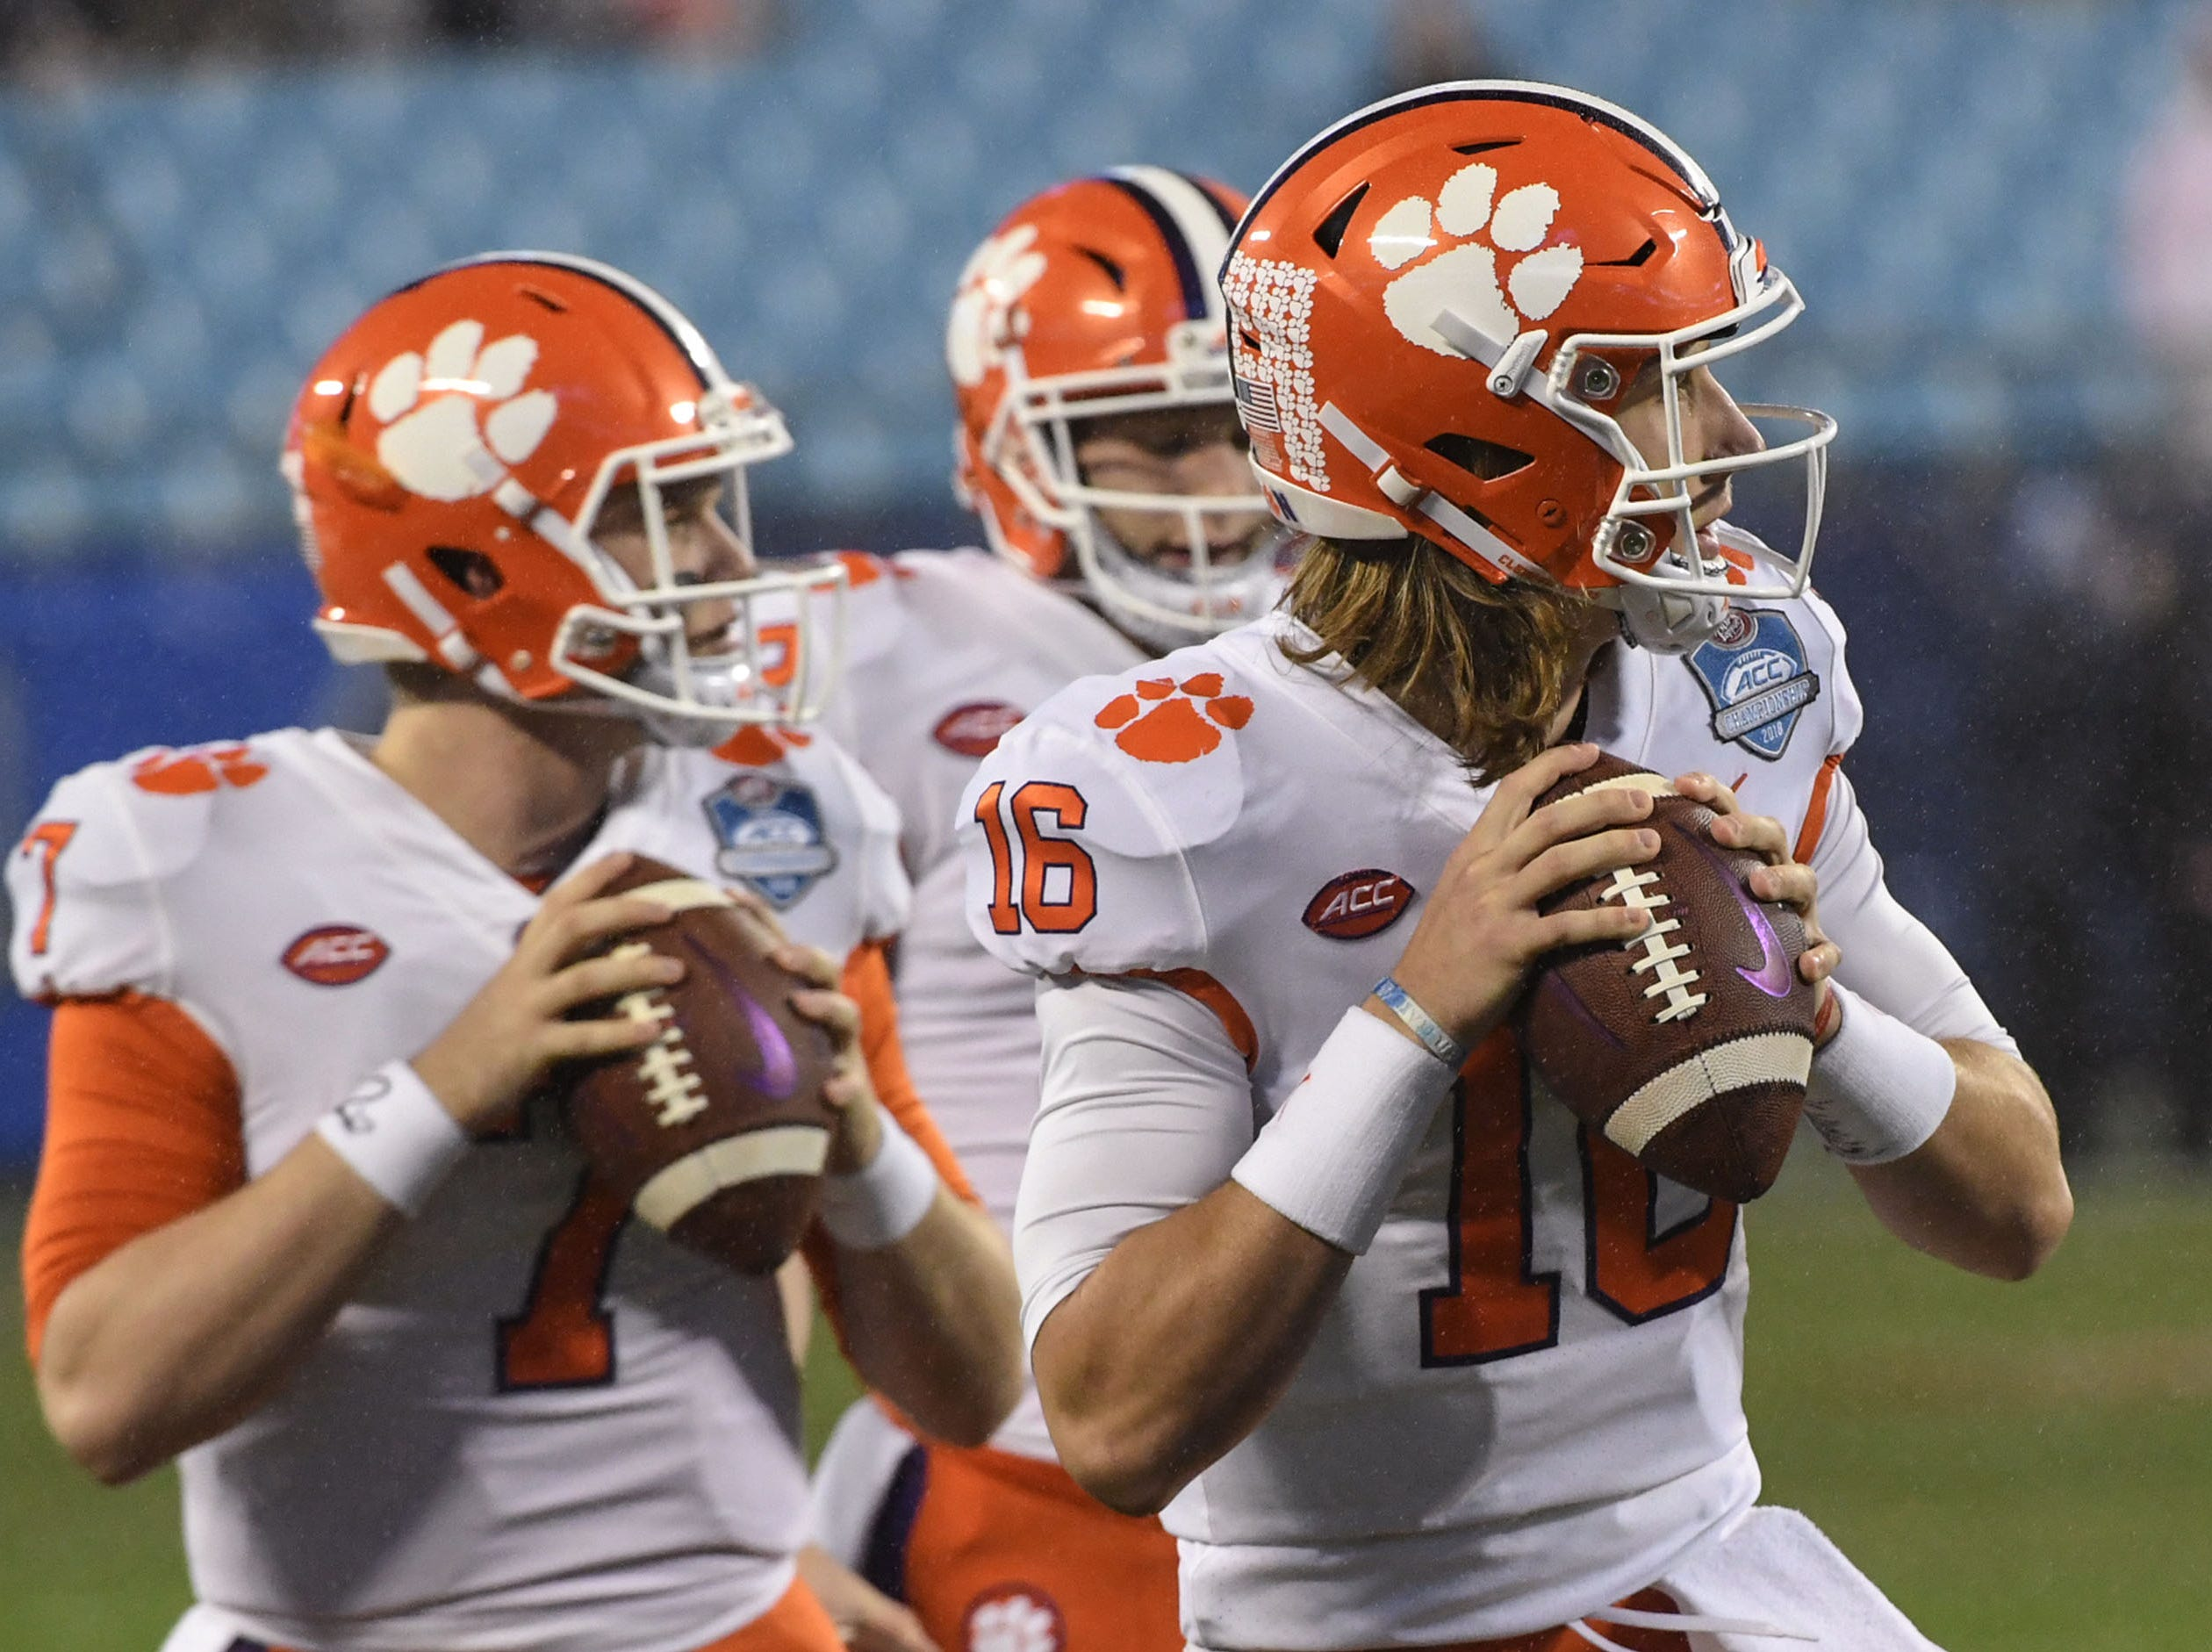 Clemson quarterback Chase Brice (7) and quarterback Trevor Lawrence (16) warm up before the game of the Dr. Pepper ACC football championship at Bank of America Stadium in Charlotte, N.C. on Saturday, December 1, 2018.